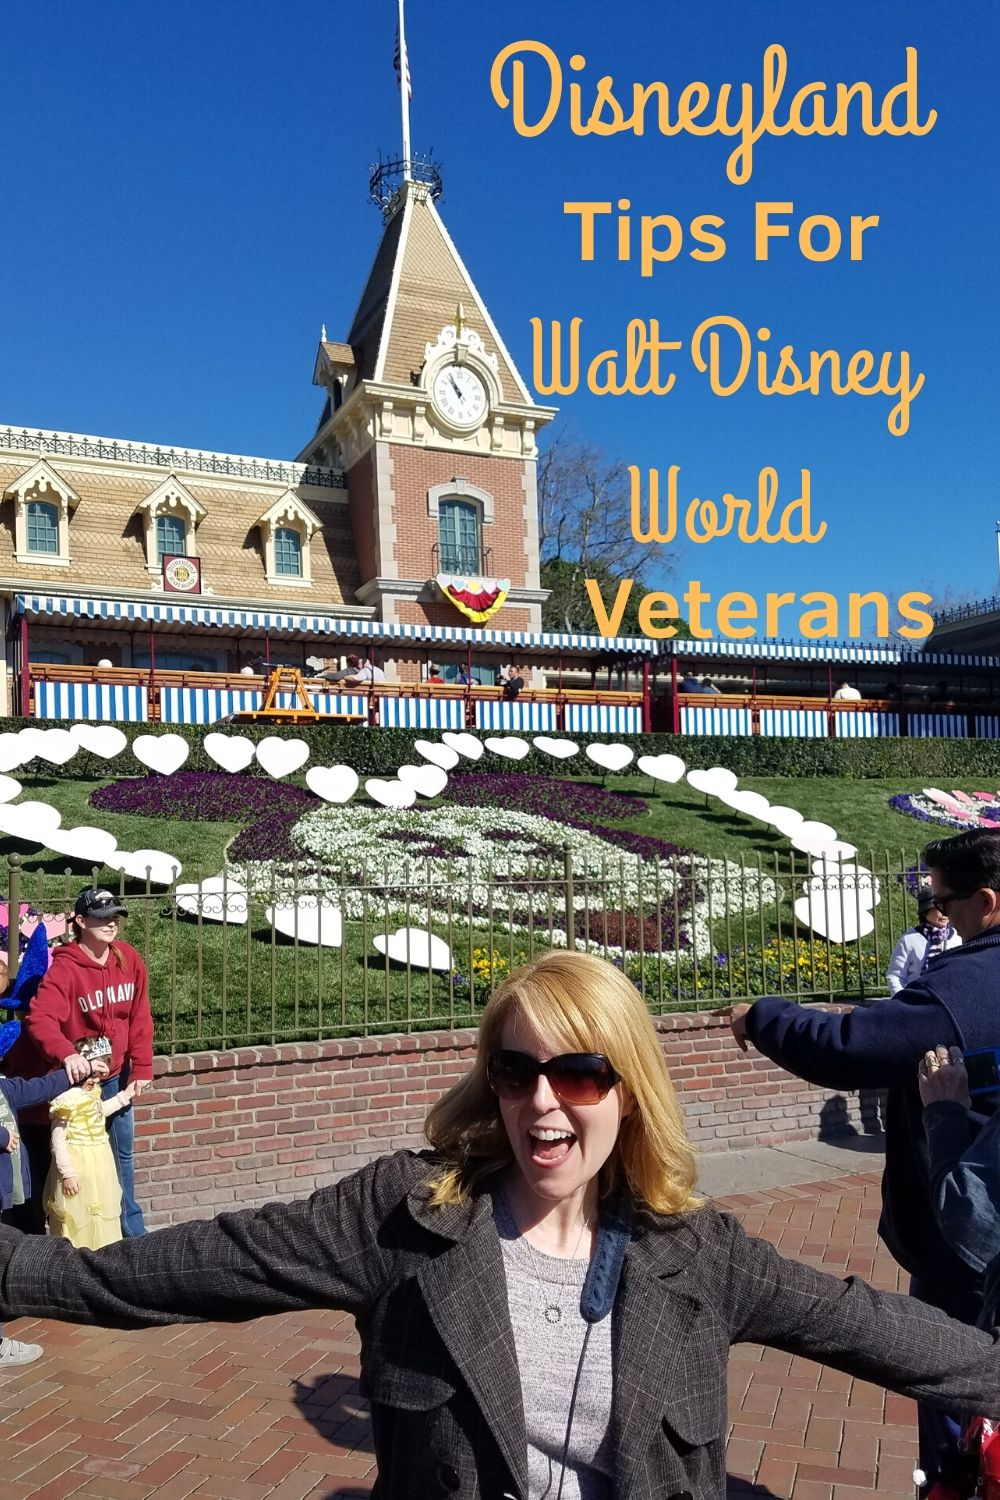 Visiting Disneyland for the first time? Check out our tips for Walt Disney World veteran visitors! #disneyland #dl #first visit